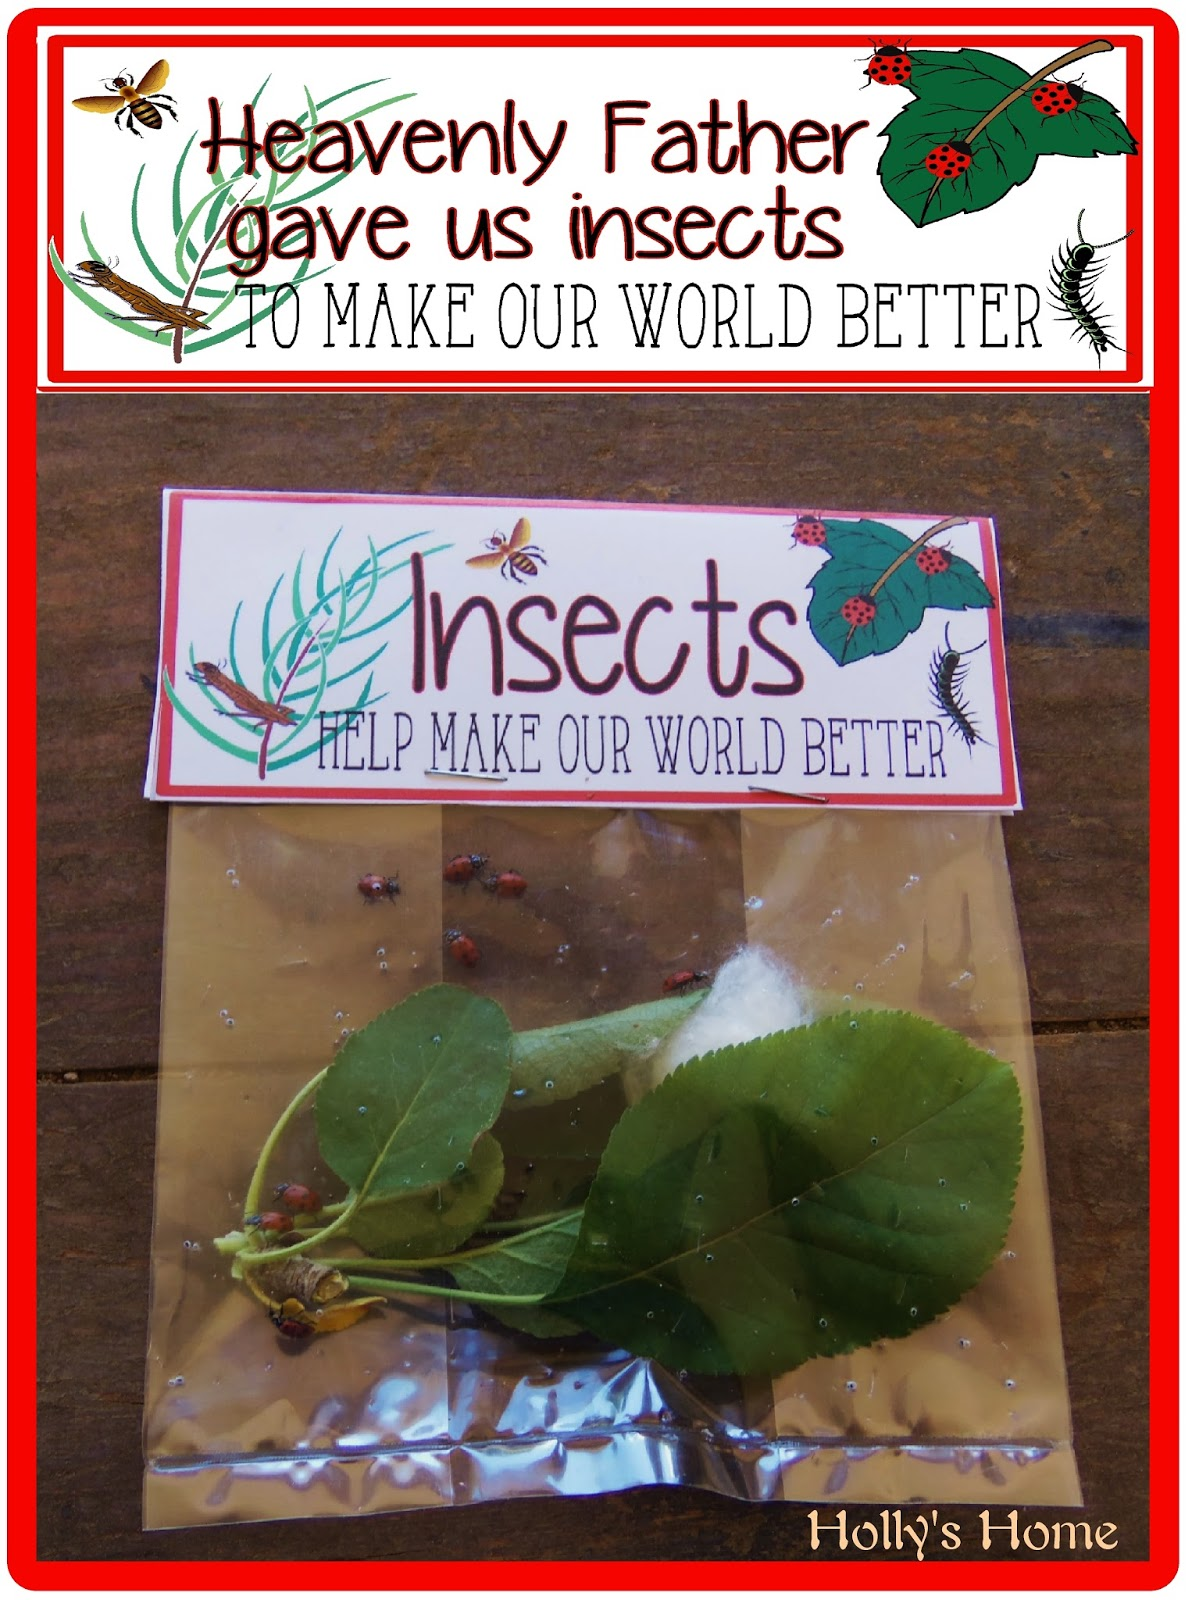 http://hollyshome-hollyshome-hollyshome.blogspot.com/2014/03/heavenly-father-gave-us-insects-to-make.html